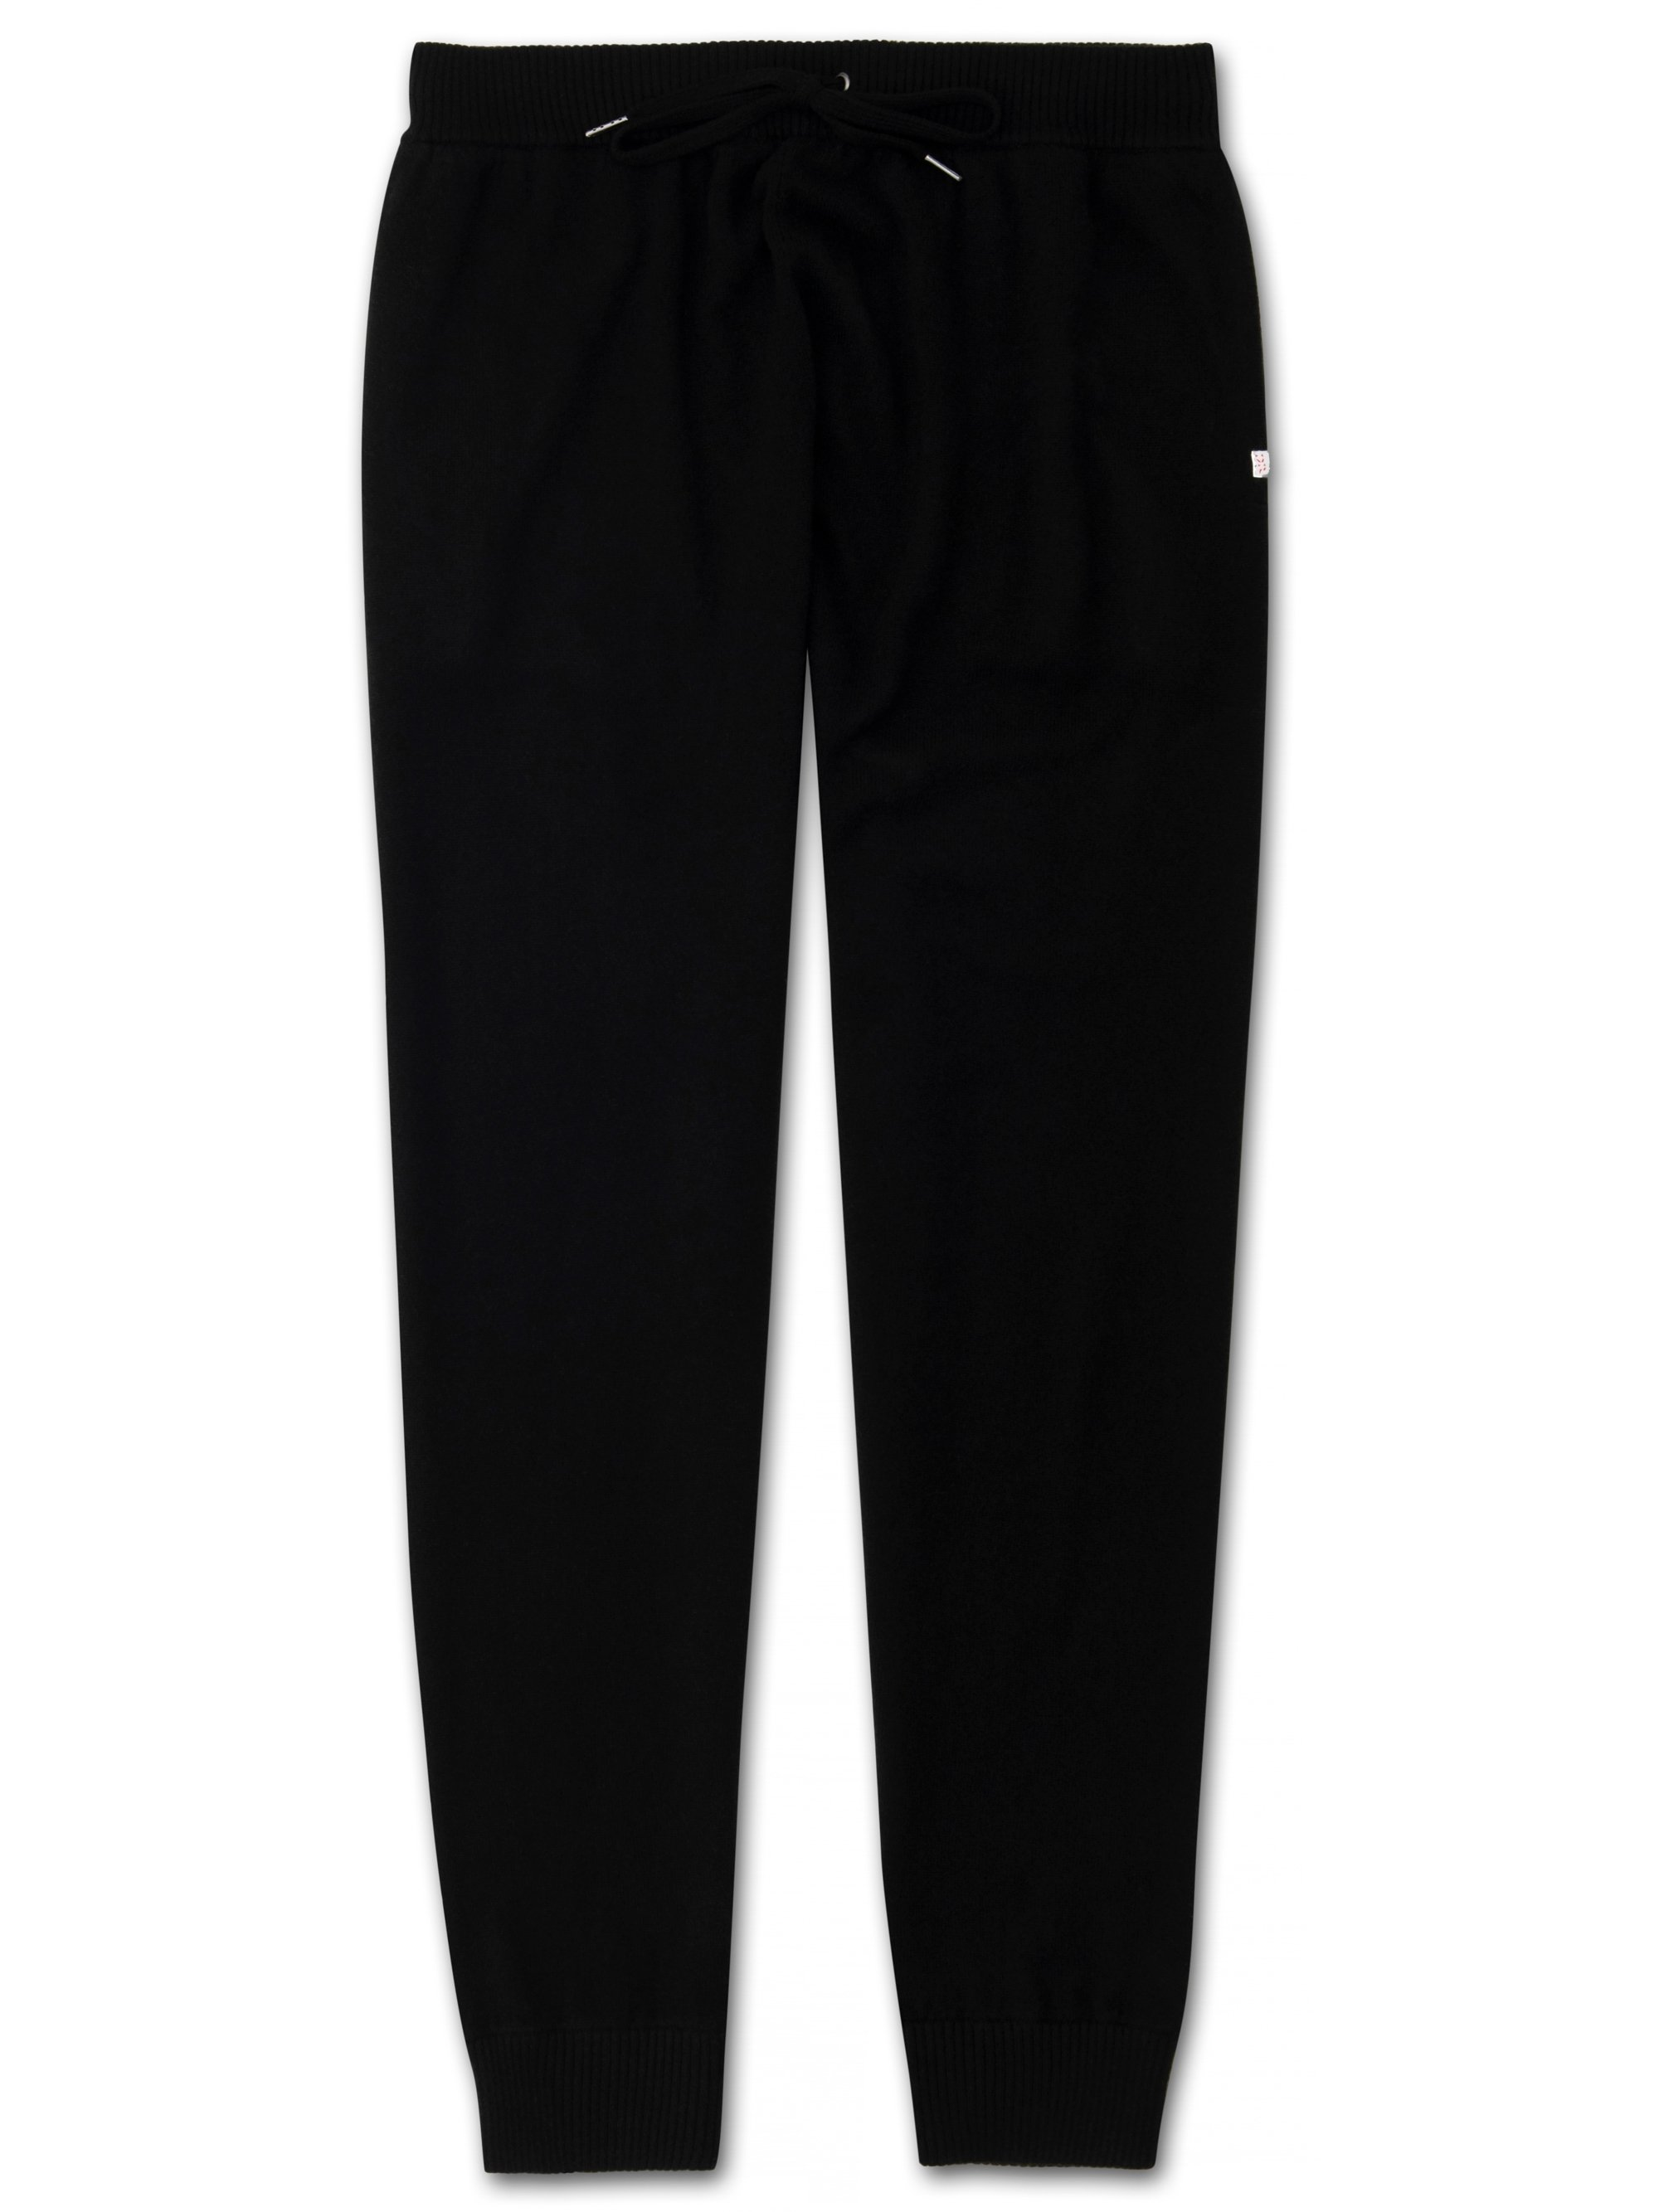 Men's Cashmere Track Pants Finley Pure Cashmere Black